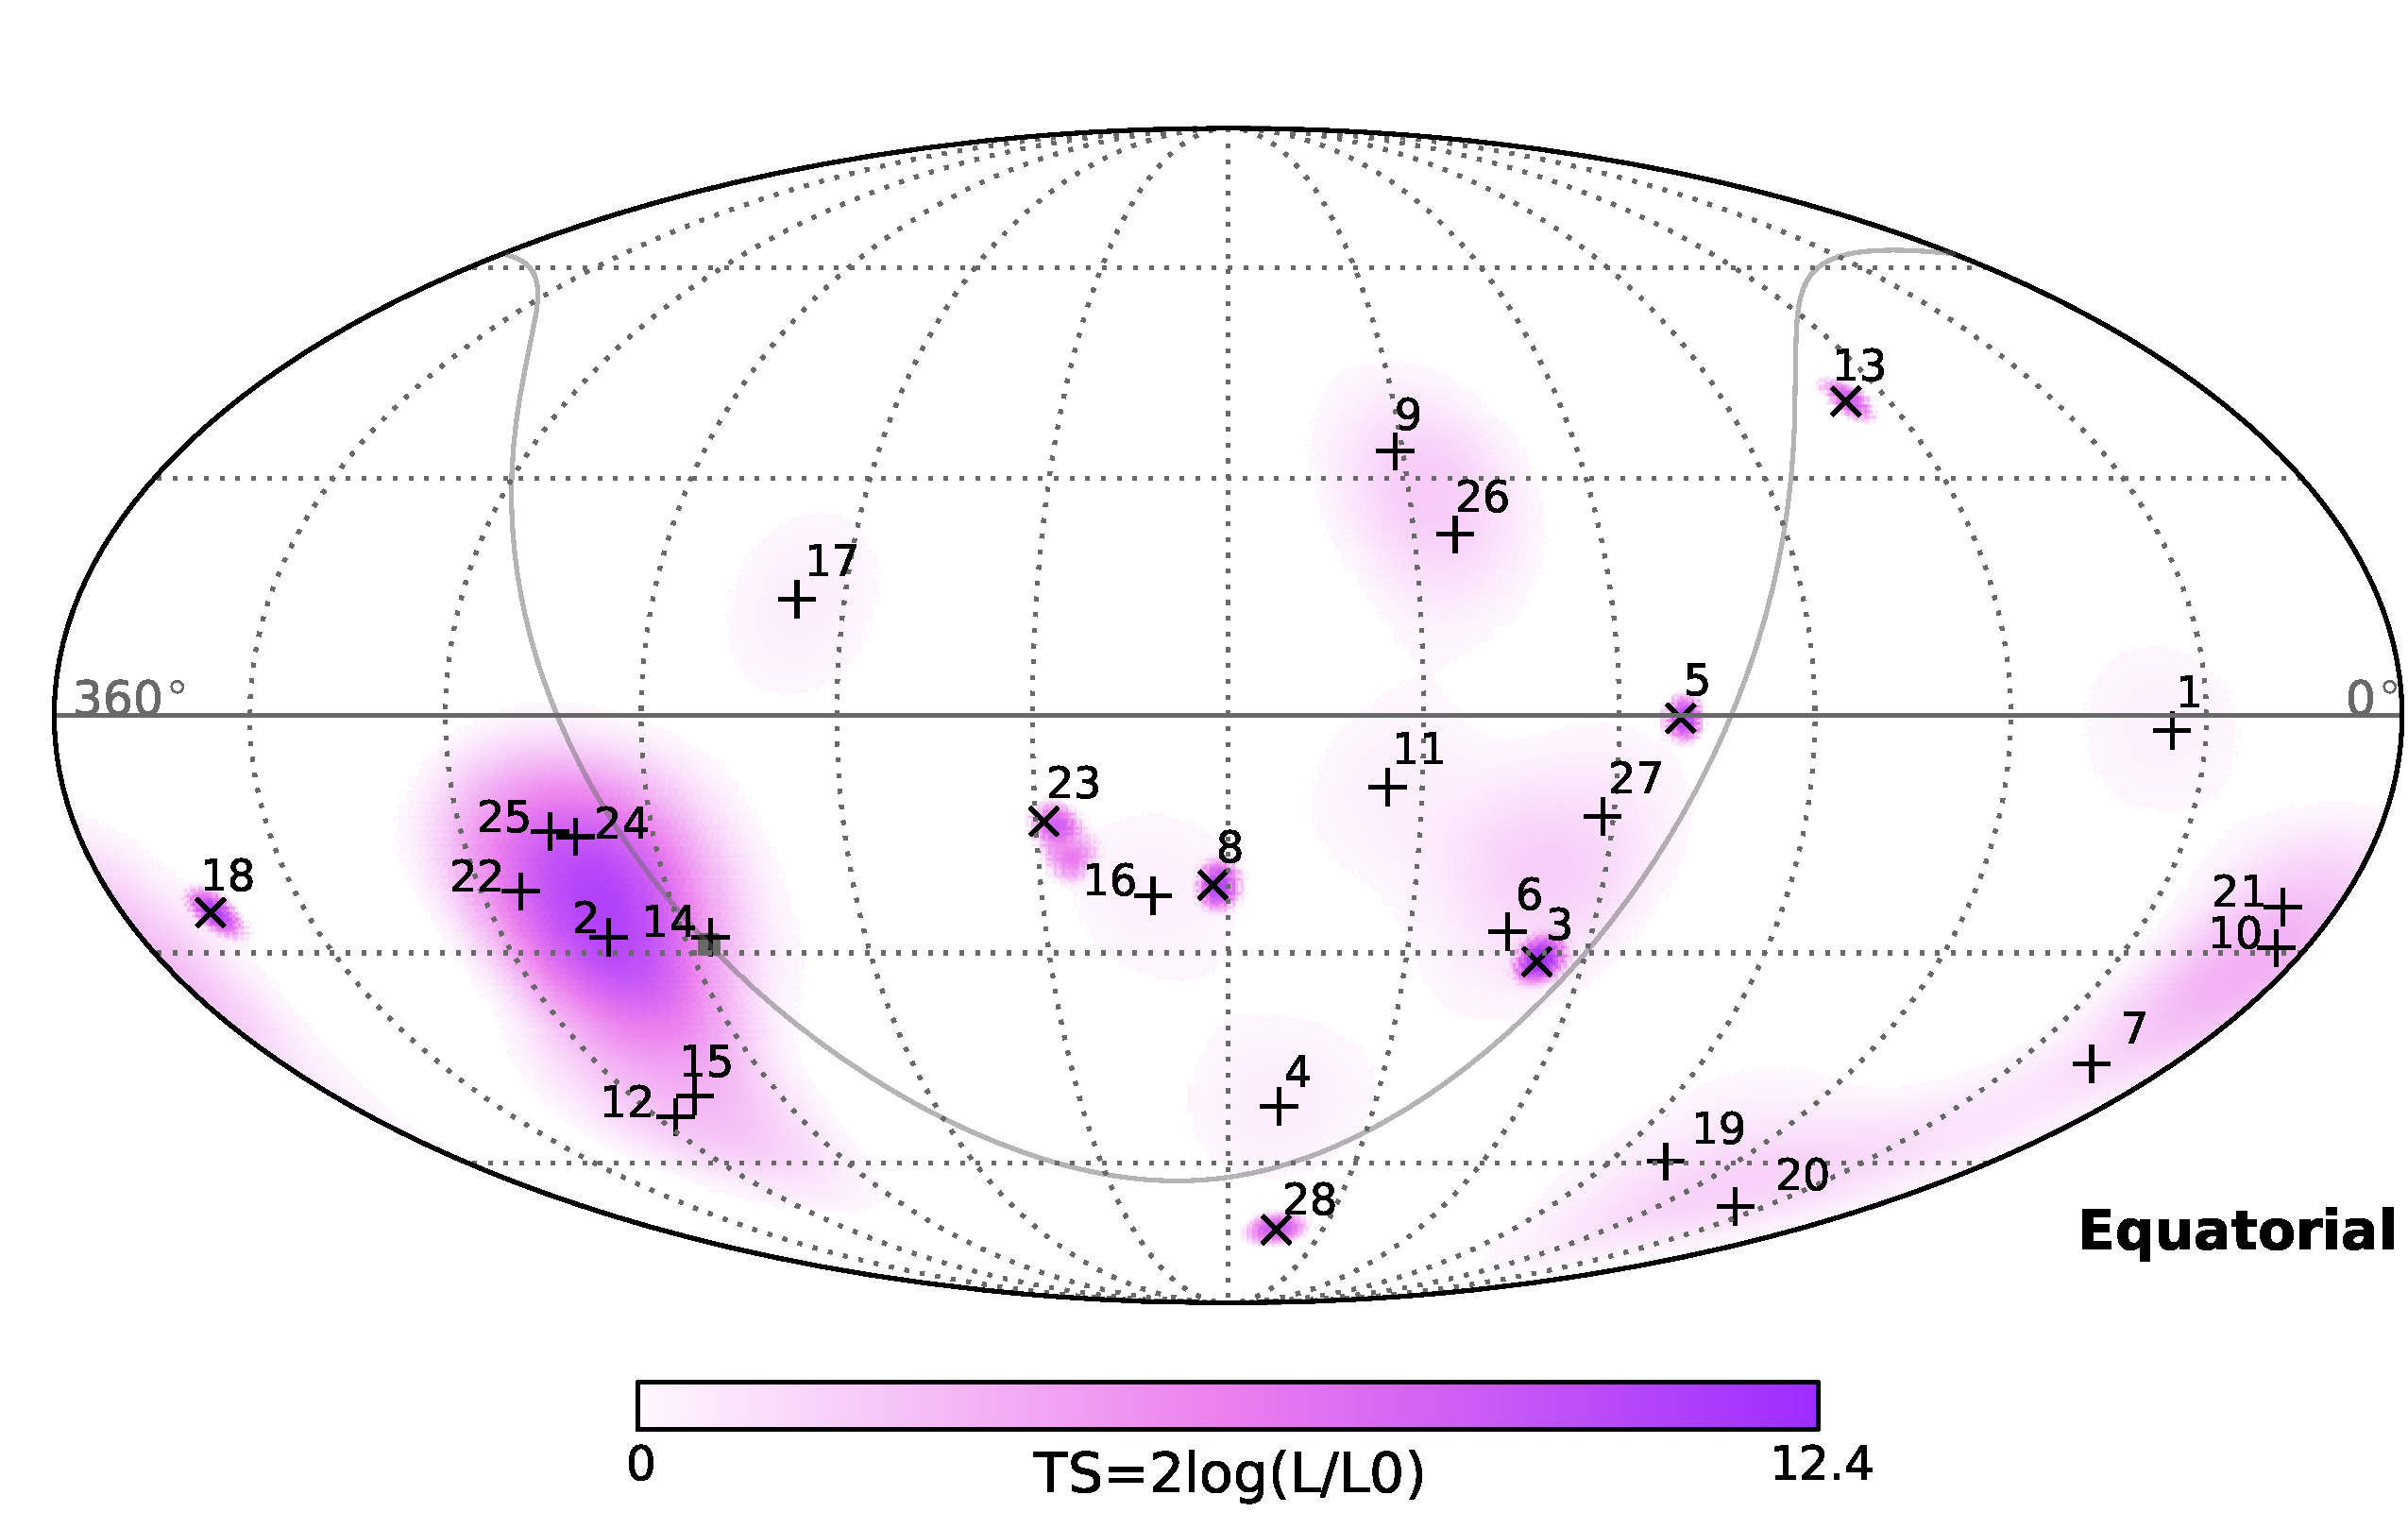 Sky map of the flux of extraterrestrial high-energy neutrinos in IceCube